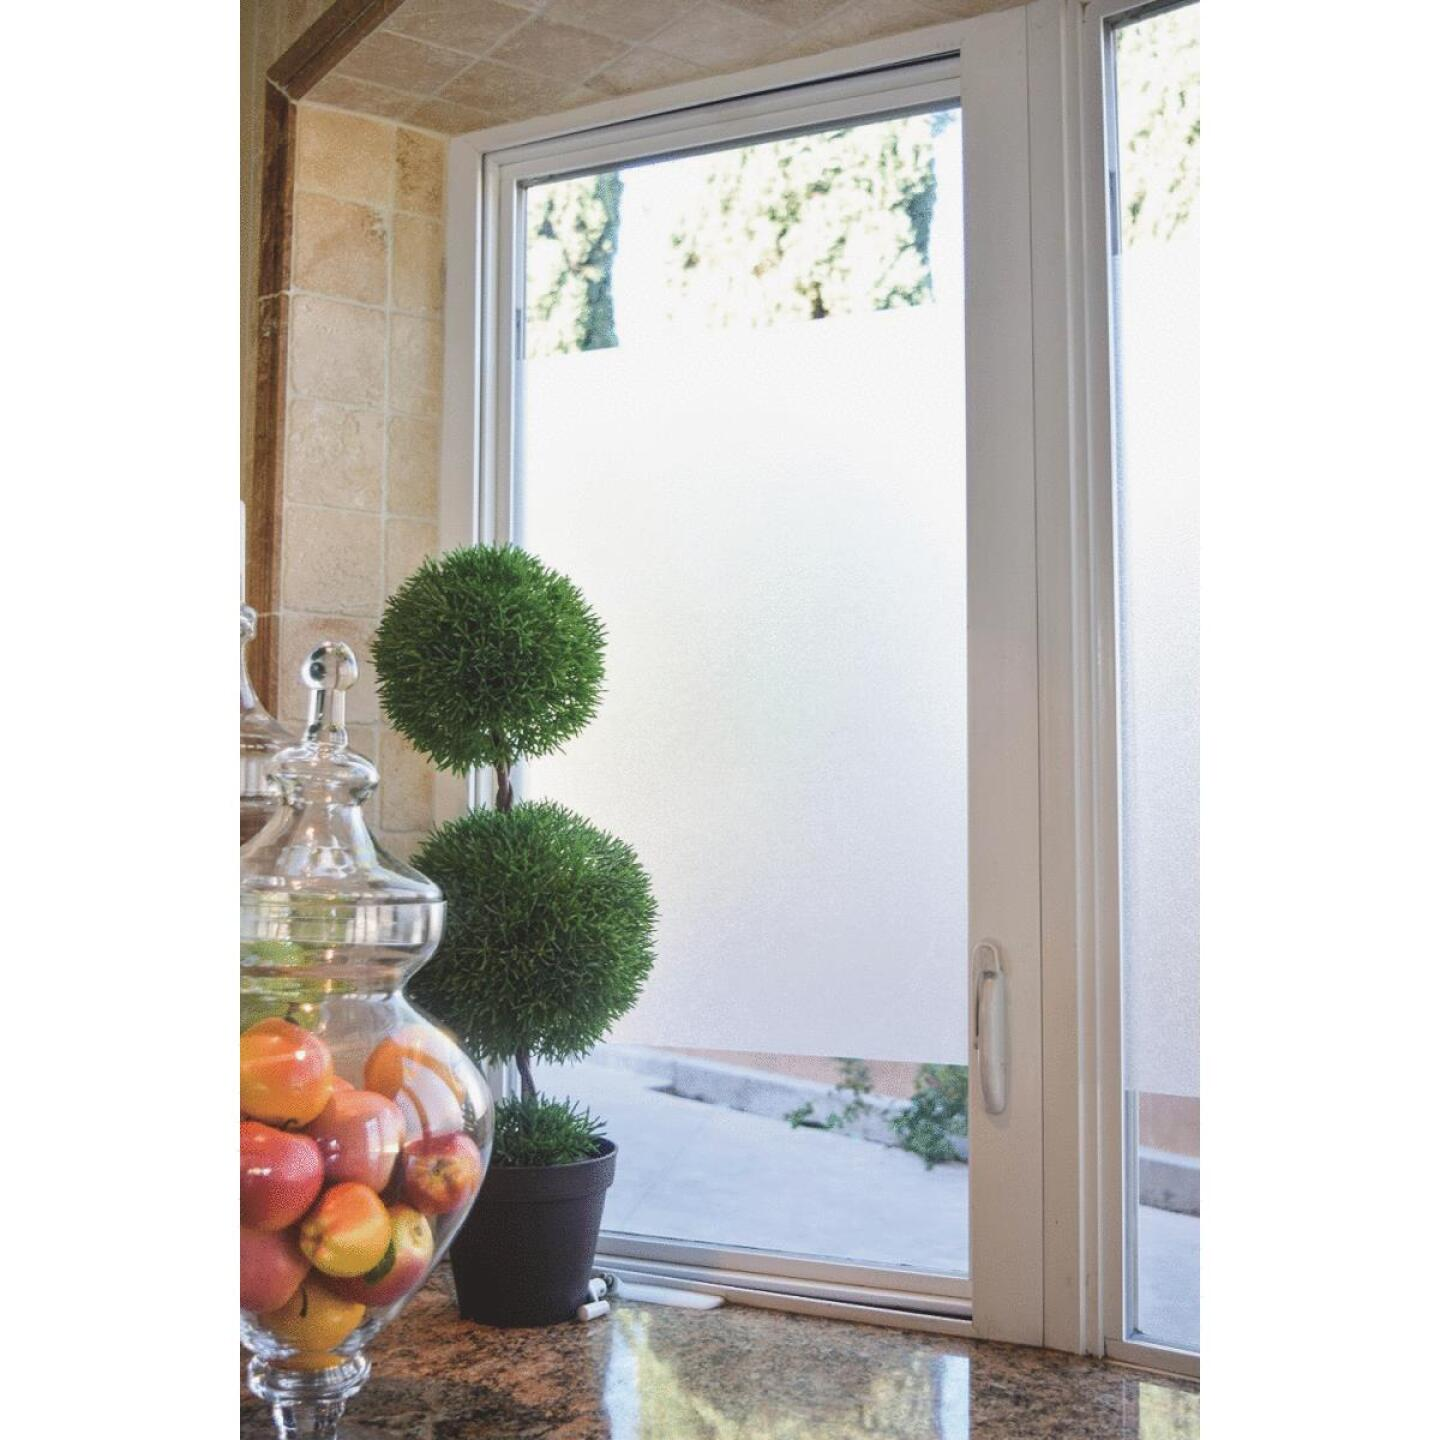 D-C-Fix 26 In. x 59 In. Frosted Static Window Film Image 3